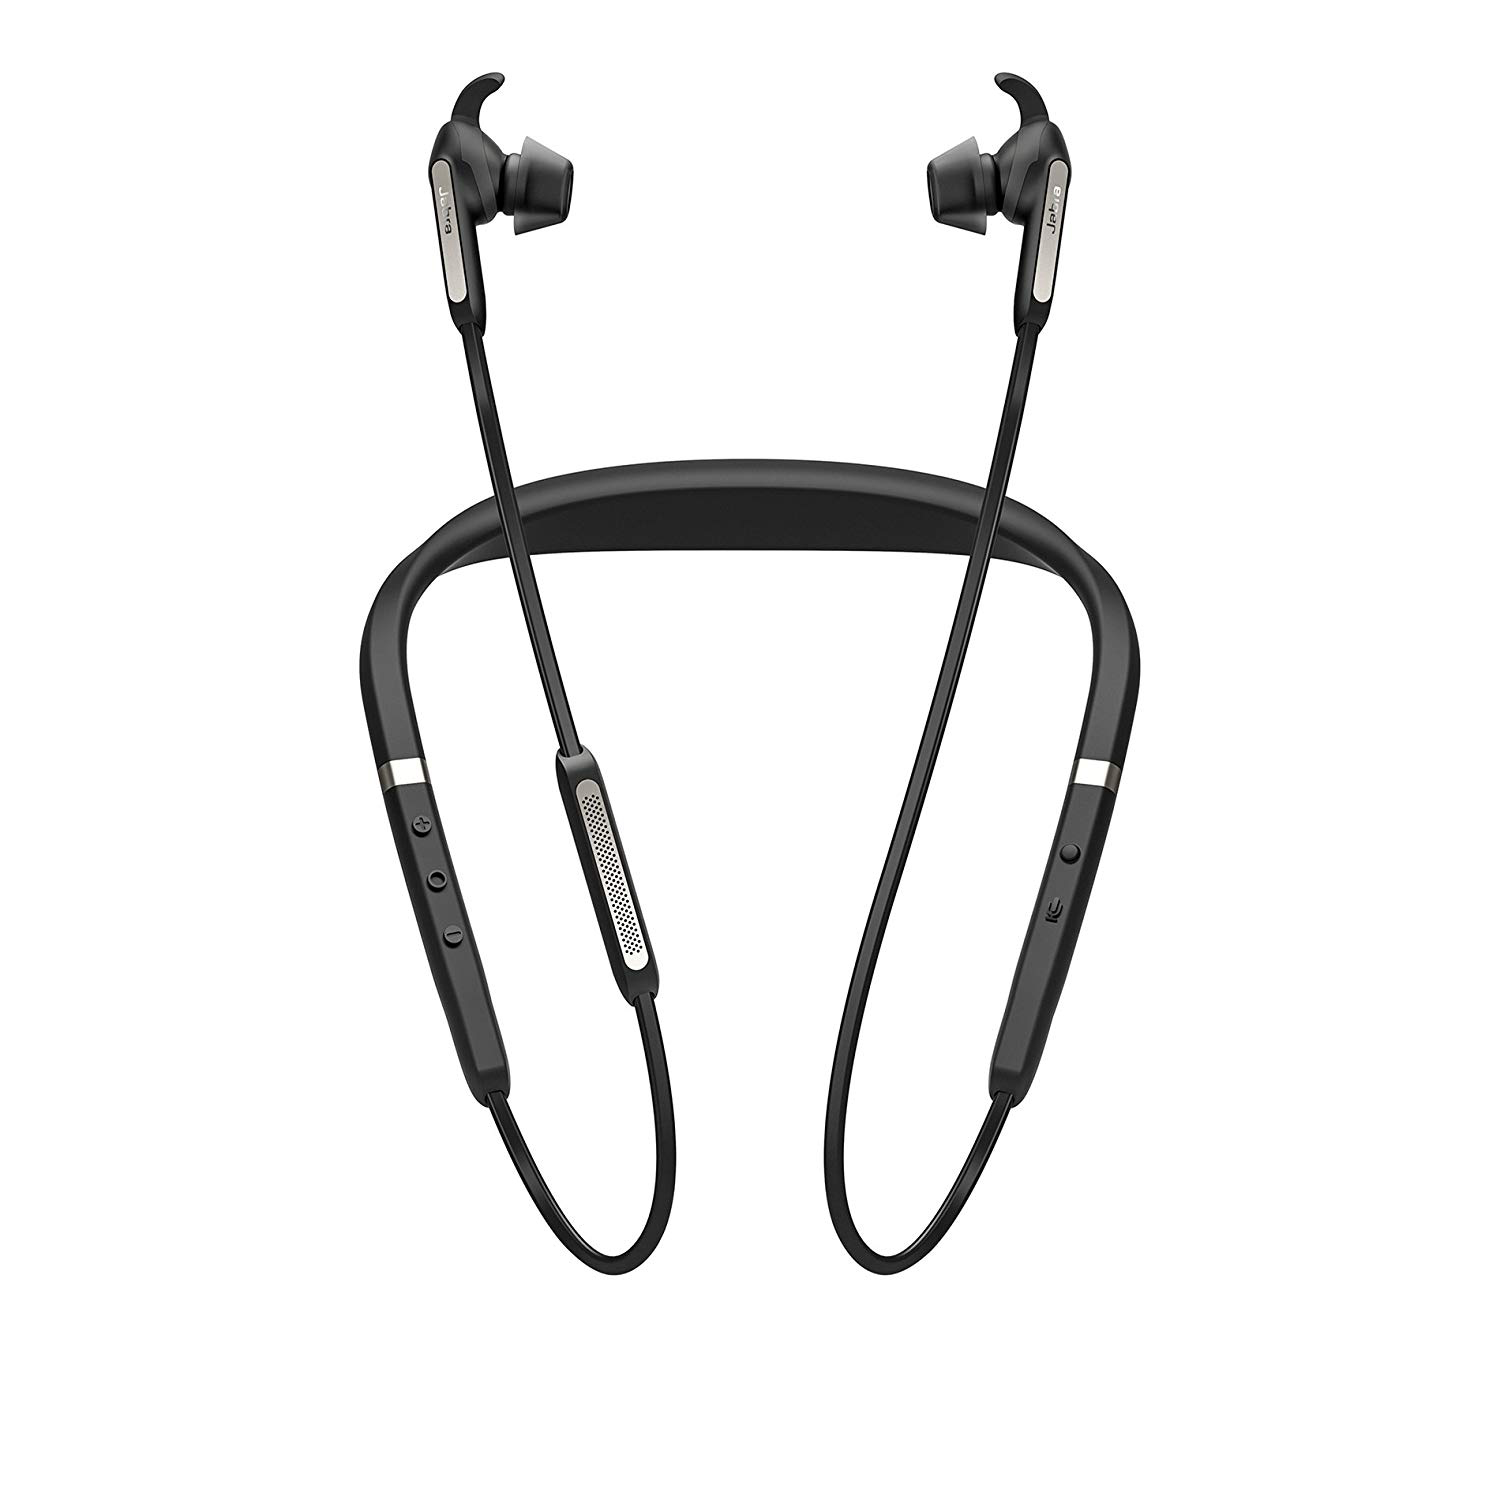 Jabra elite 65e - earphones with mic